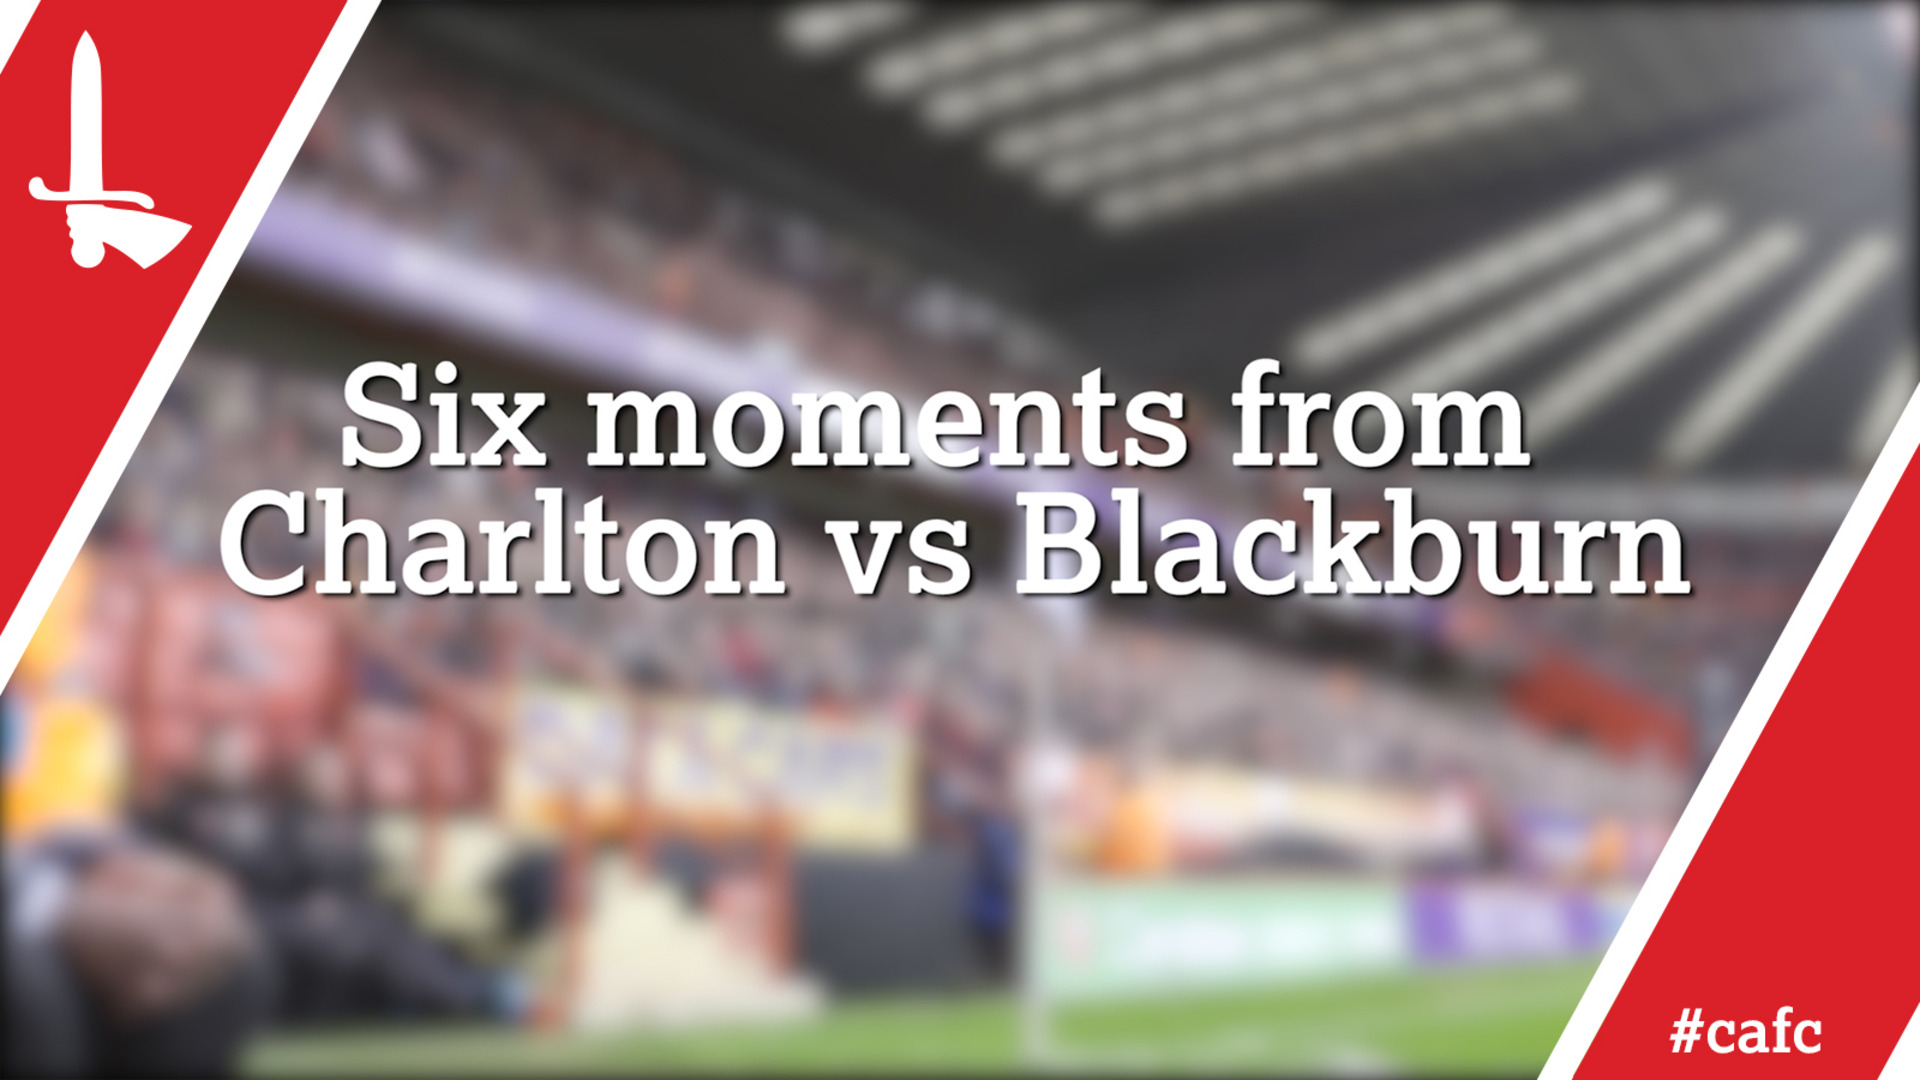 Six moments from Charlton vs Blackburn